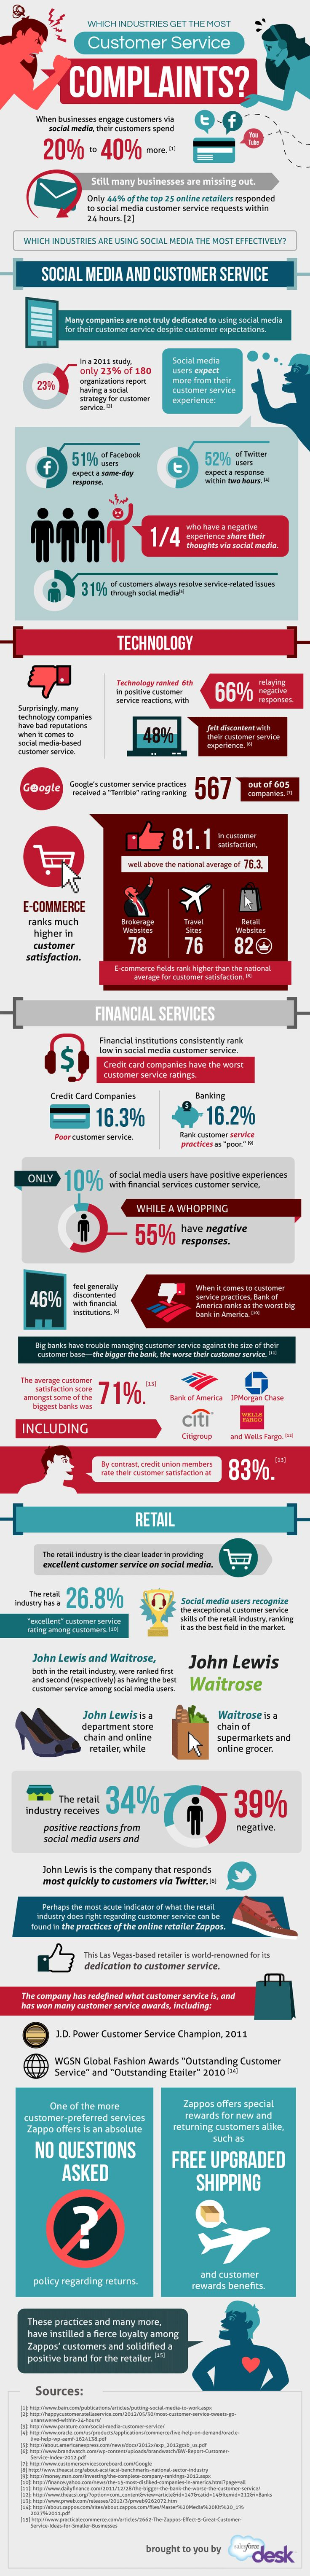 Which industries get the most #customerservice complaints and which industries are using #socialmedia the most effectively #infographic